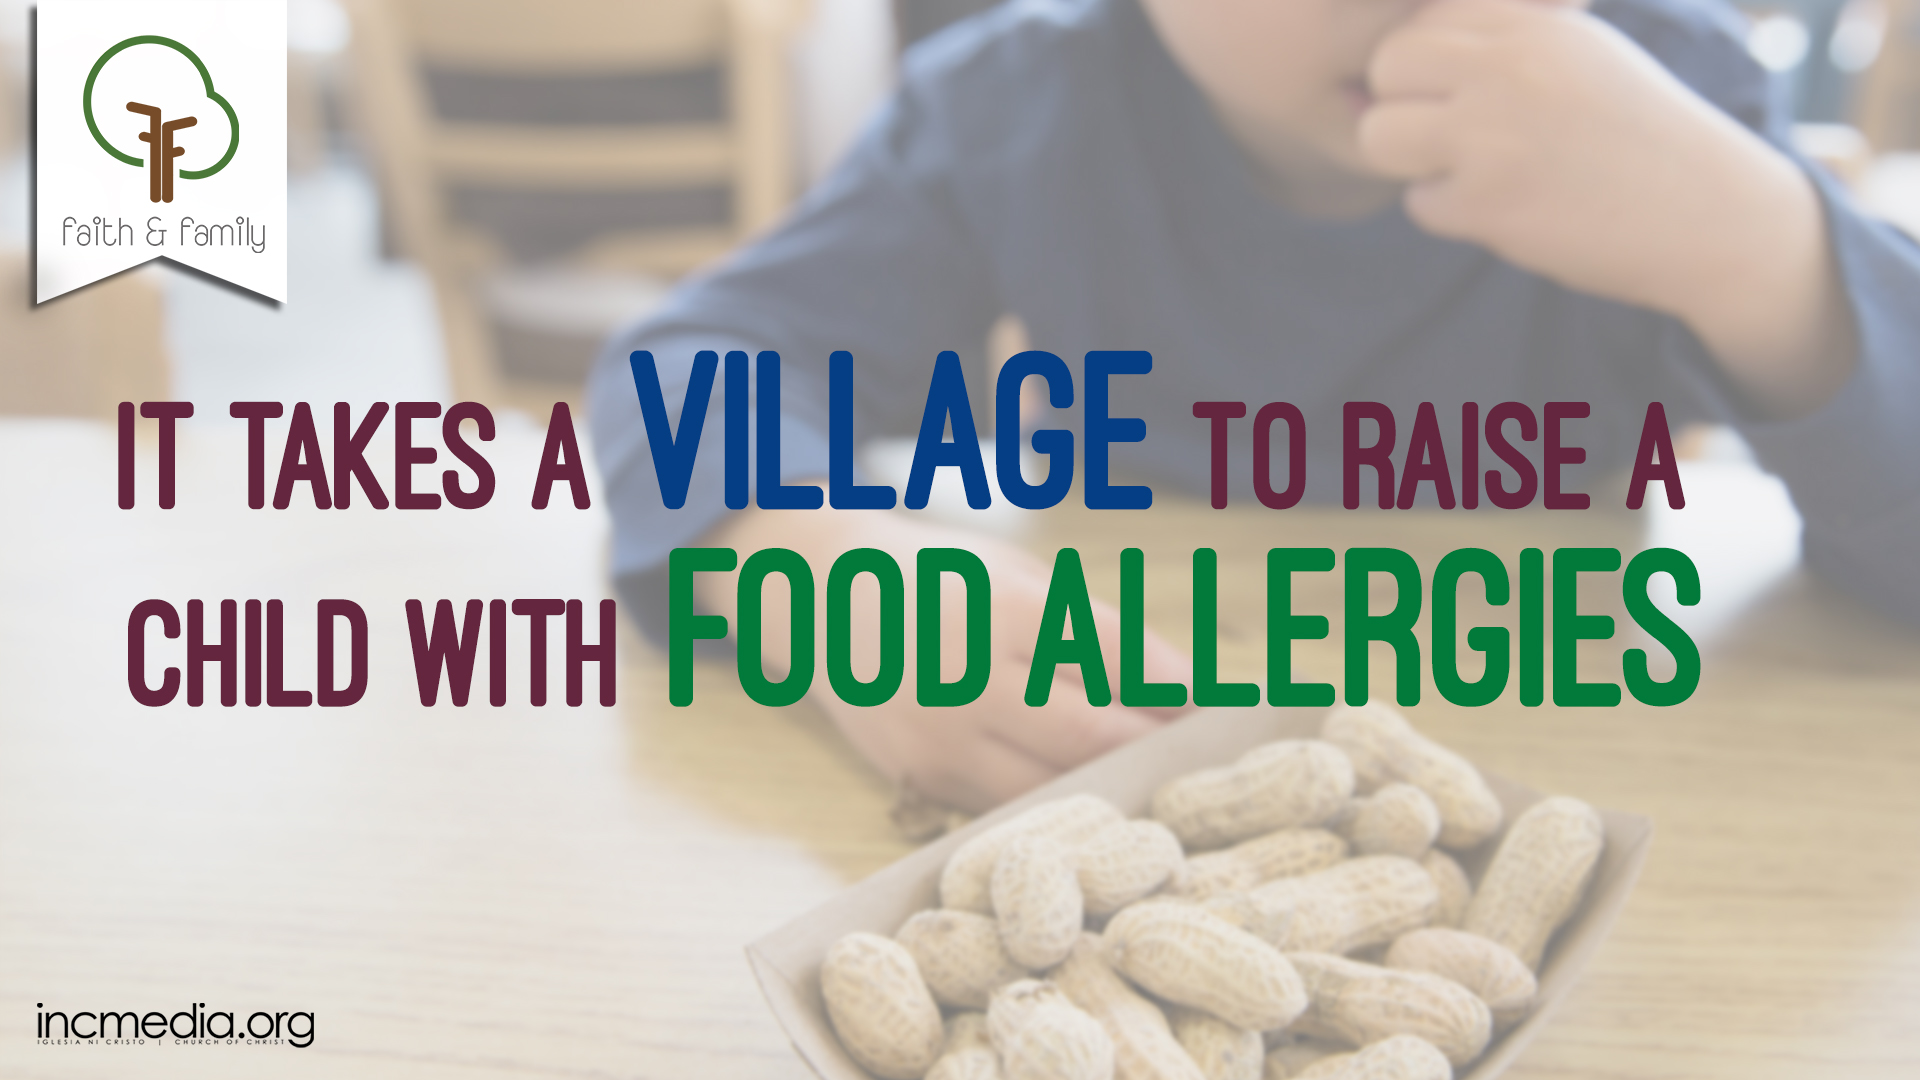 It Takes a Village to Raise a Child with Food Allergies